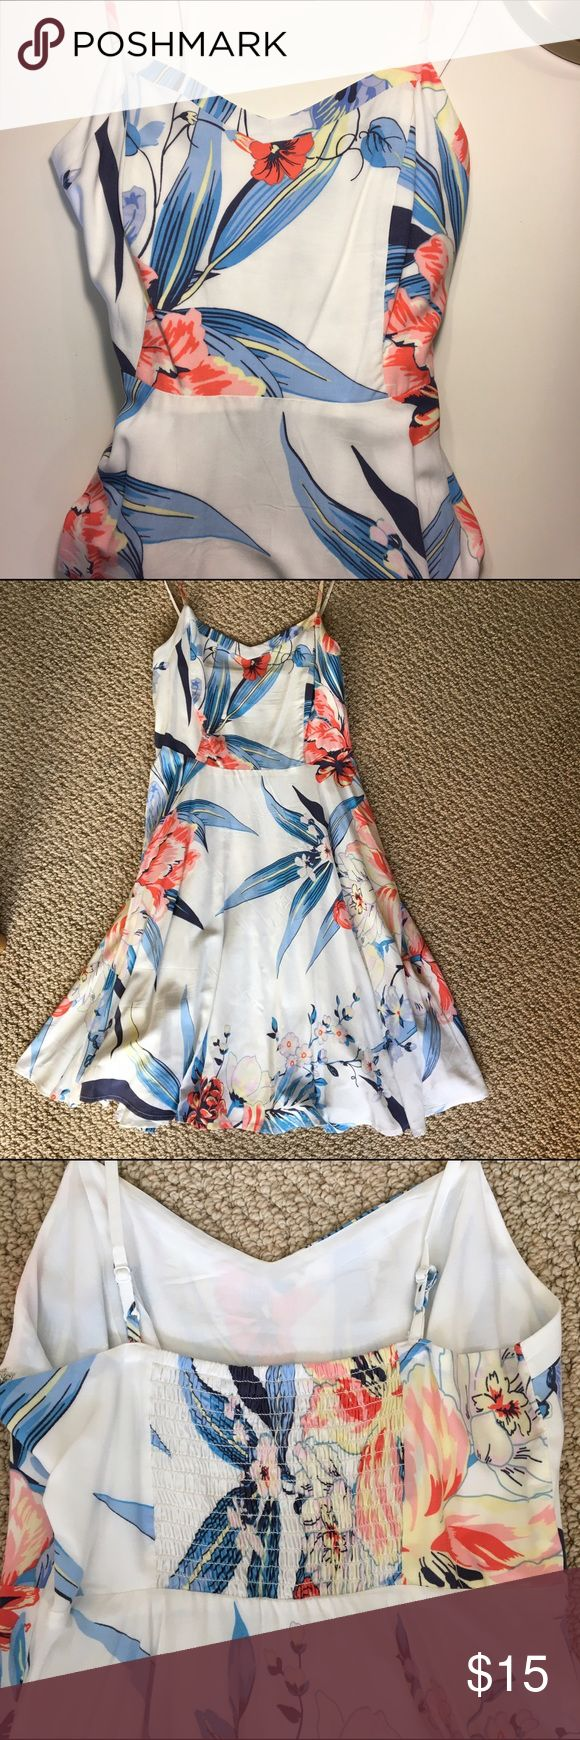 Old Navy floral fit and flare dress Old Navy floral, fit and flare dress in EXCELLENT condition! First photo is of a similar dress, just a different print. Removed tag, but never wore it. It just needs a new home! Features inner lining, adjustable straps and stretch top. Zipper on side. Super flattering fit and flare dress!  Old Navy Dresses